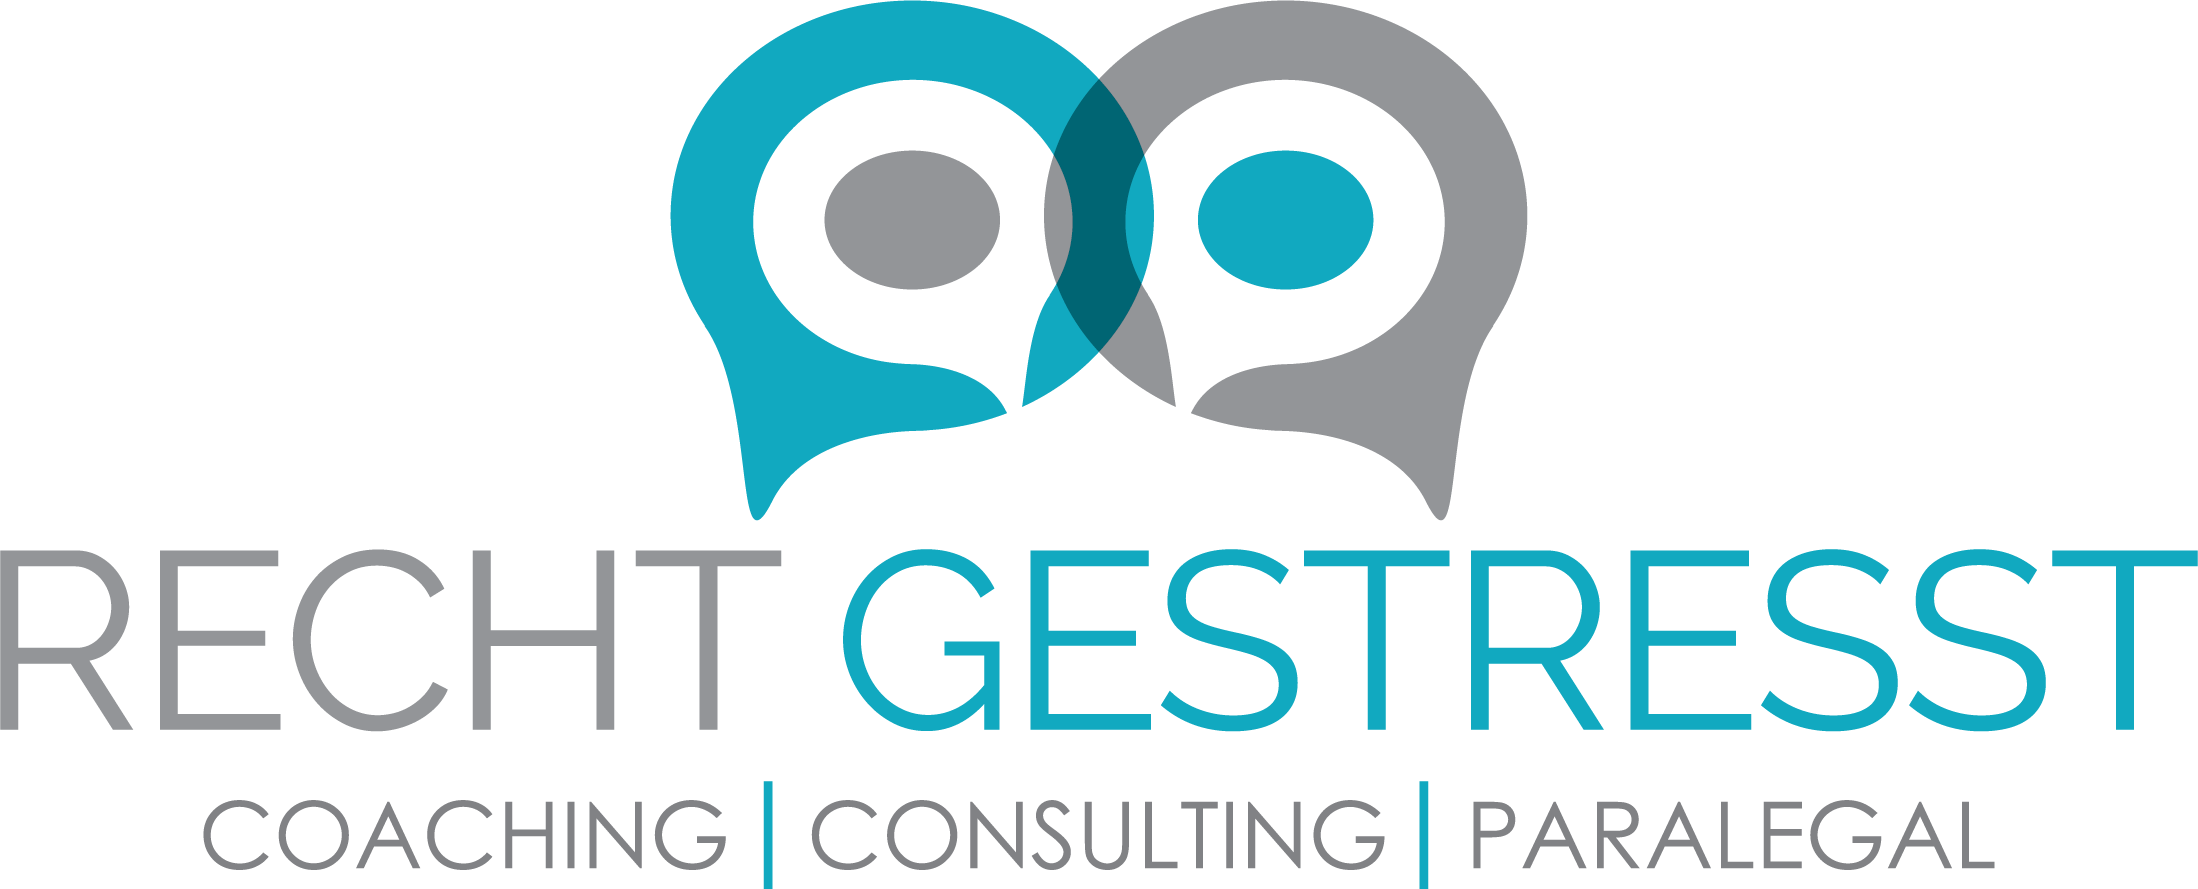 Recht Gestresst Dassa Smith Coaching Consulting Paralegal